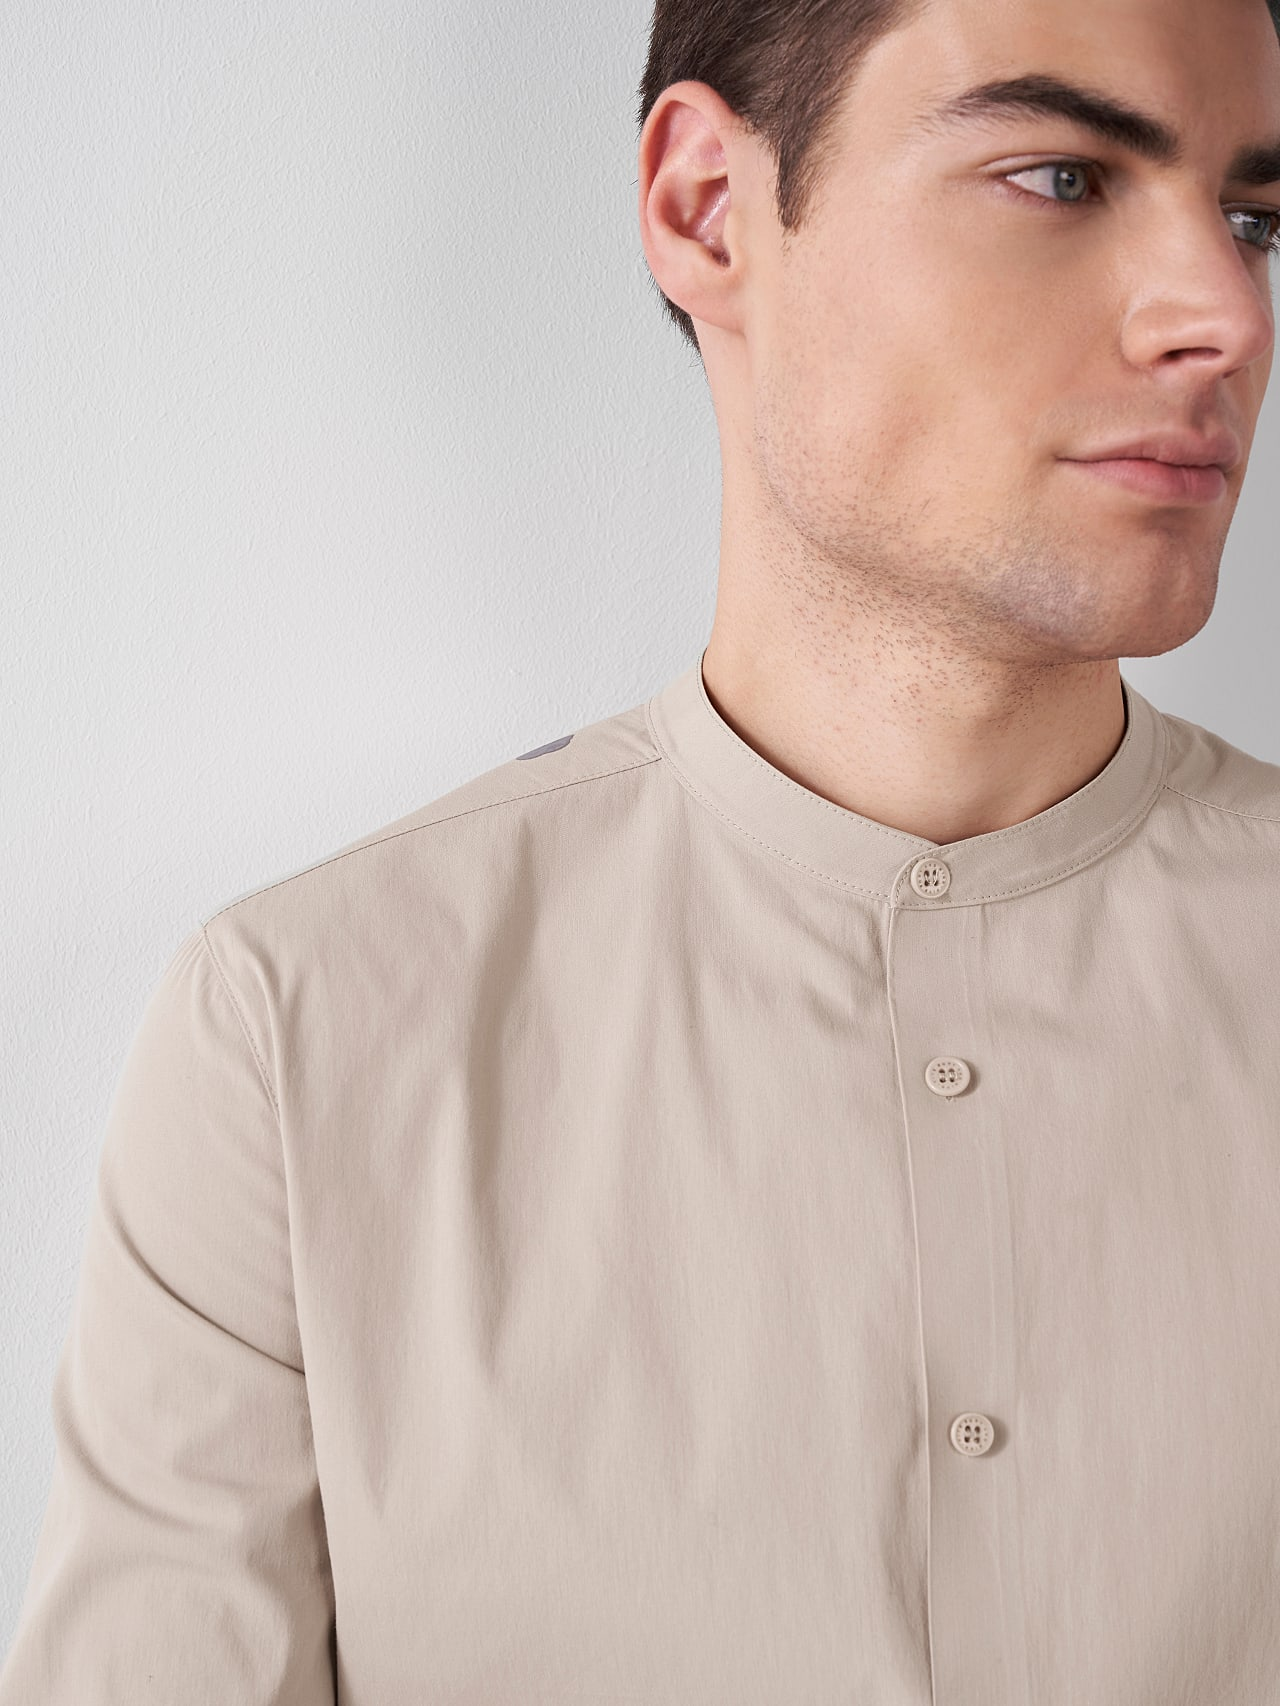 WIDT V9.Y5.01 Stand-Up Collar Cotton-Stretch Shirt Sand Right Alpha Tauri